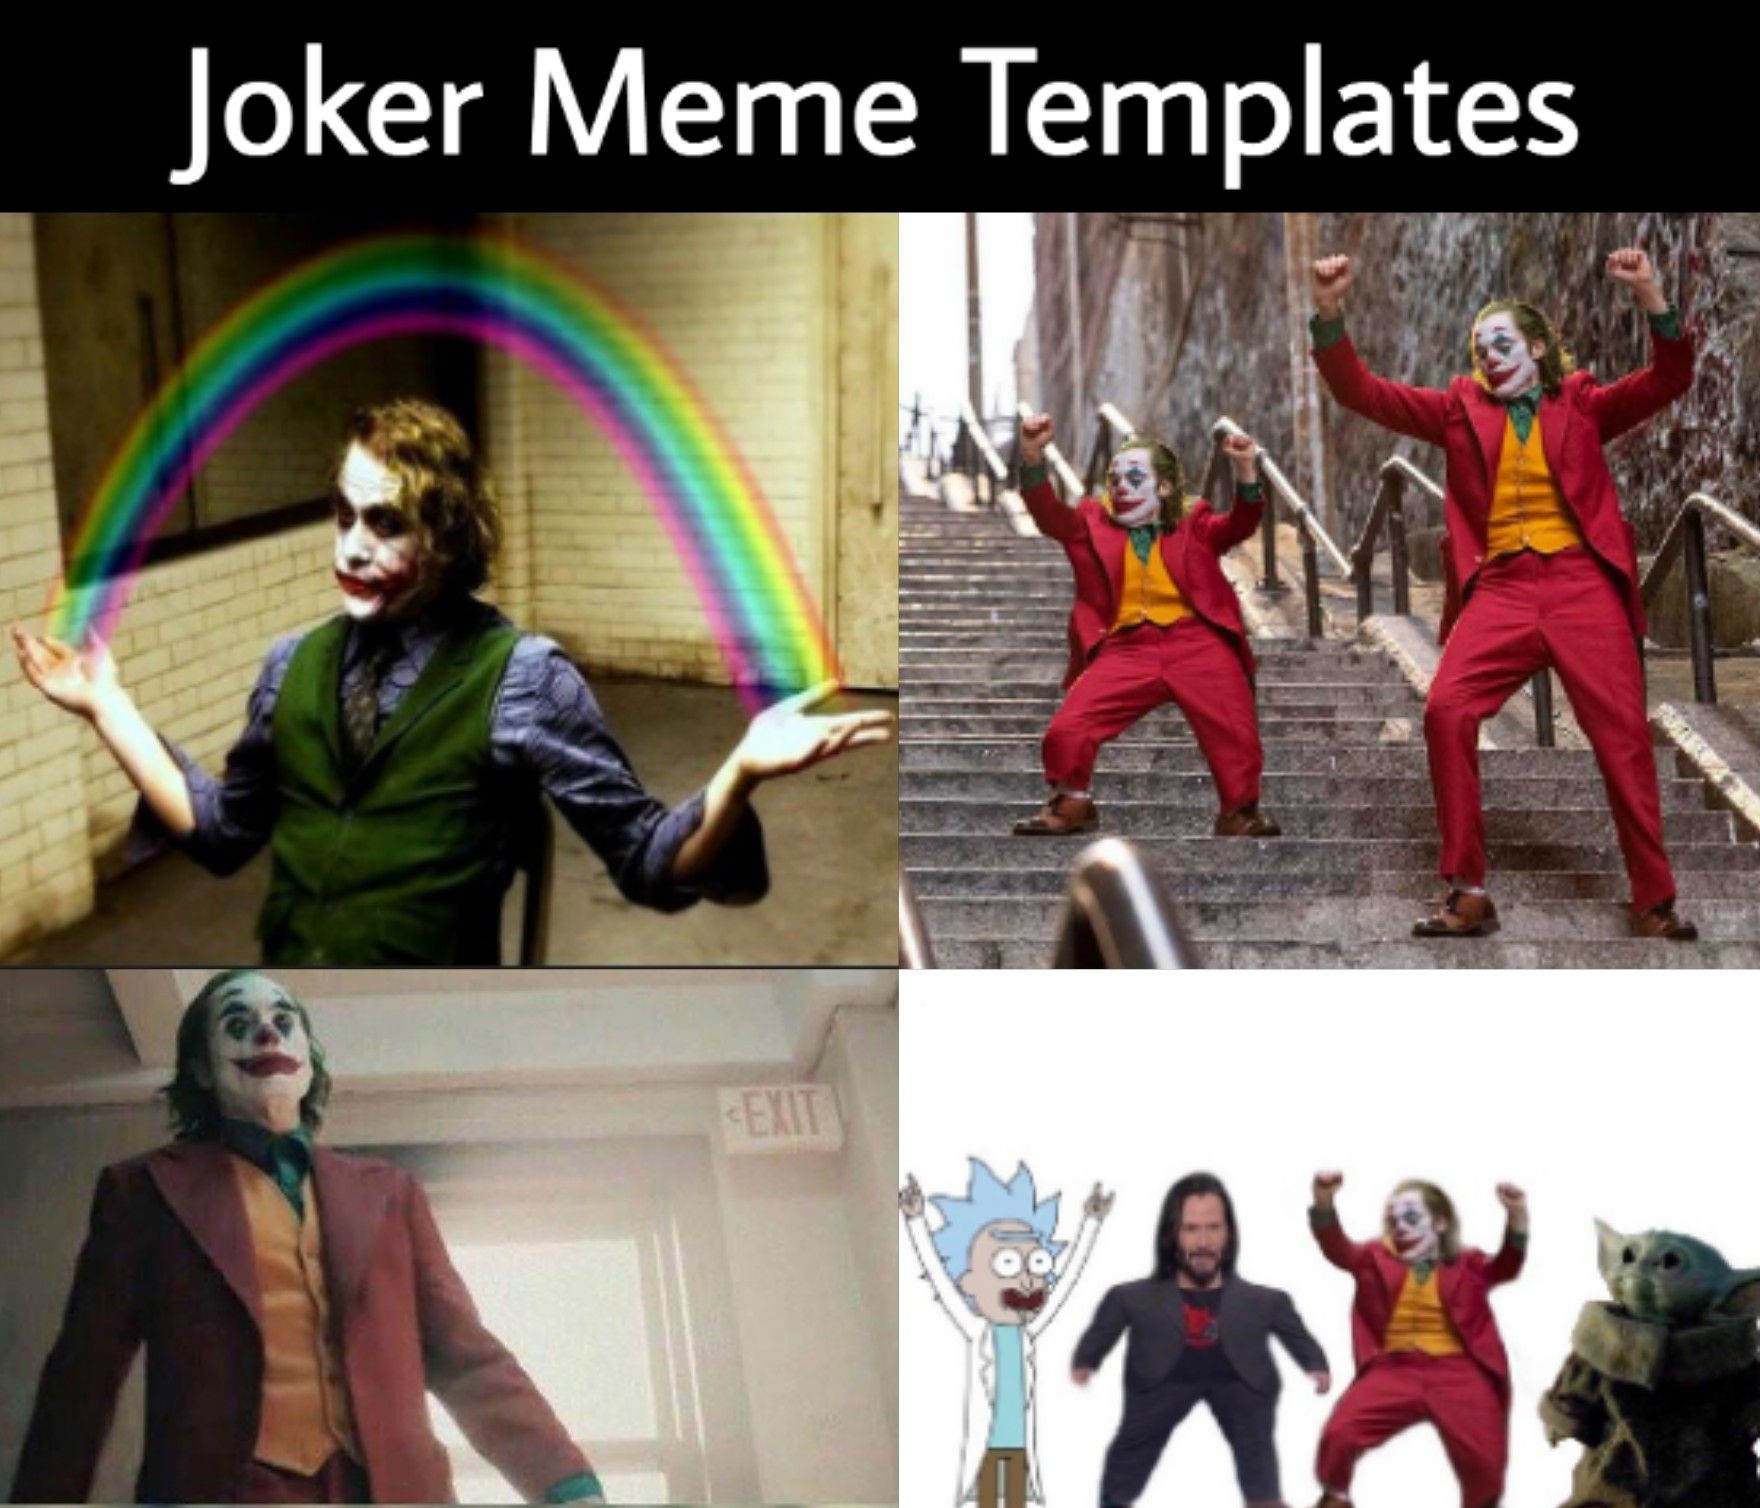 Joker Meme Templates